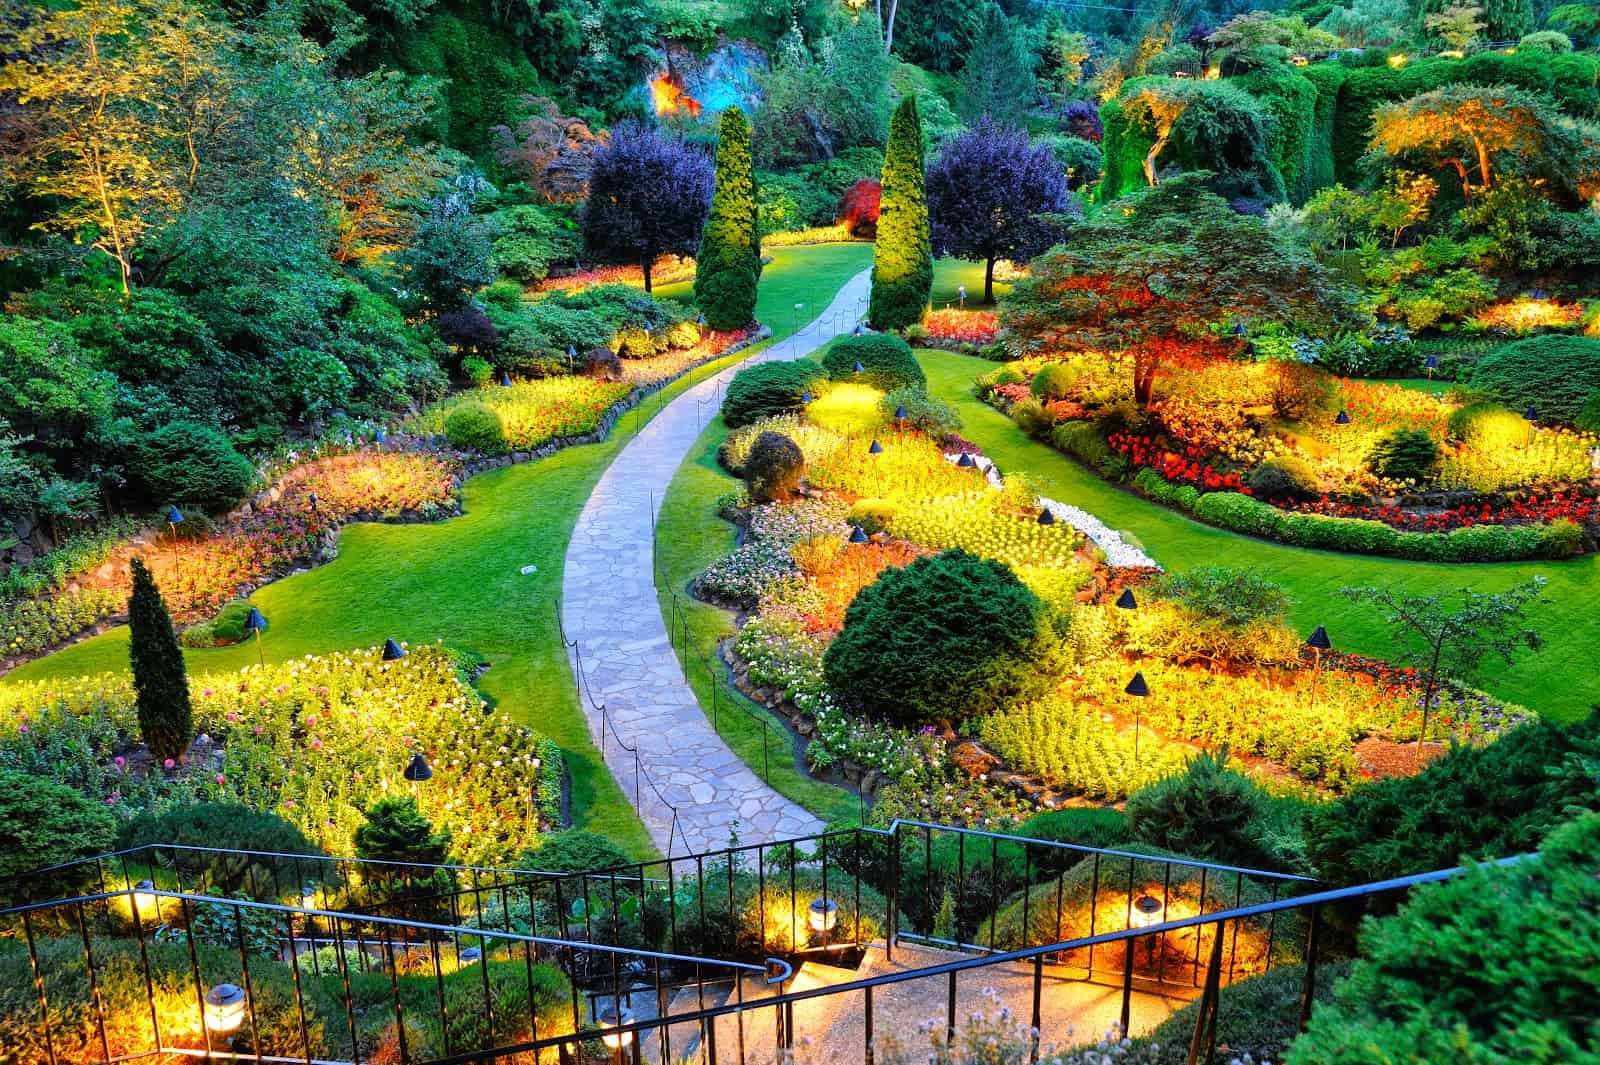 13 of the most beautifully designed flower gardens in the world 5 designed flower garden glowing from the reflection of yellow decorative lights before dark izmirmasajfo